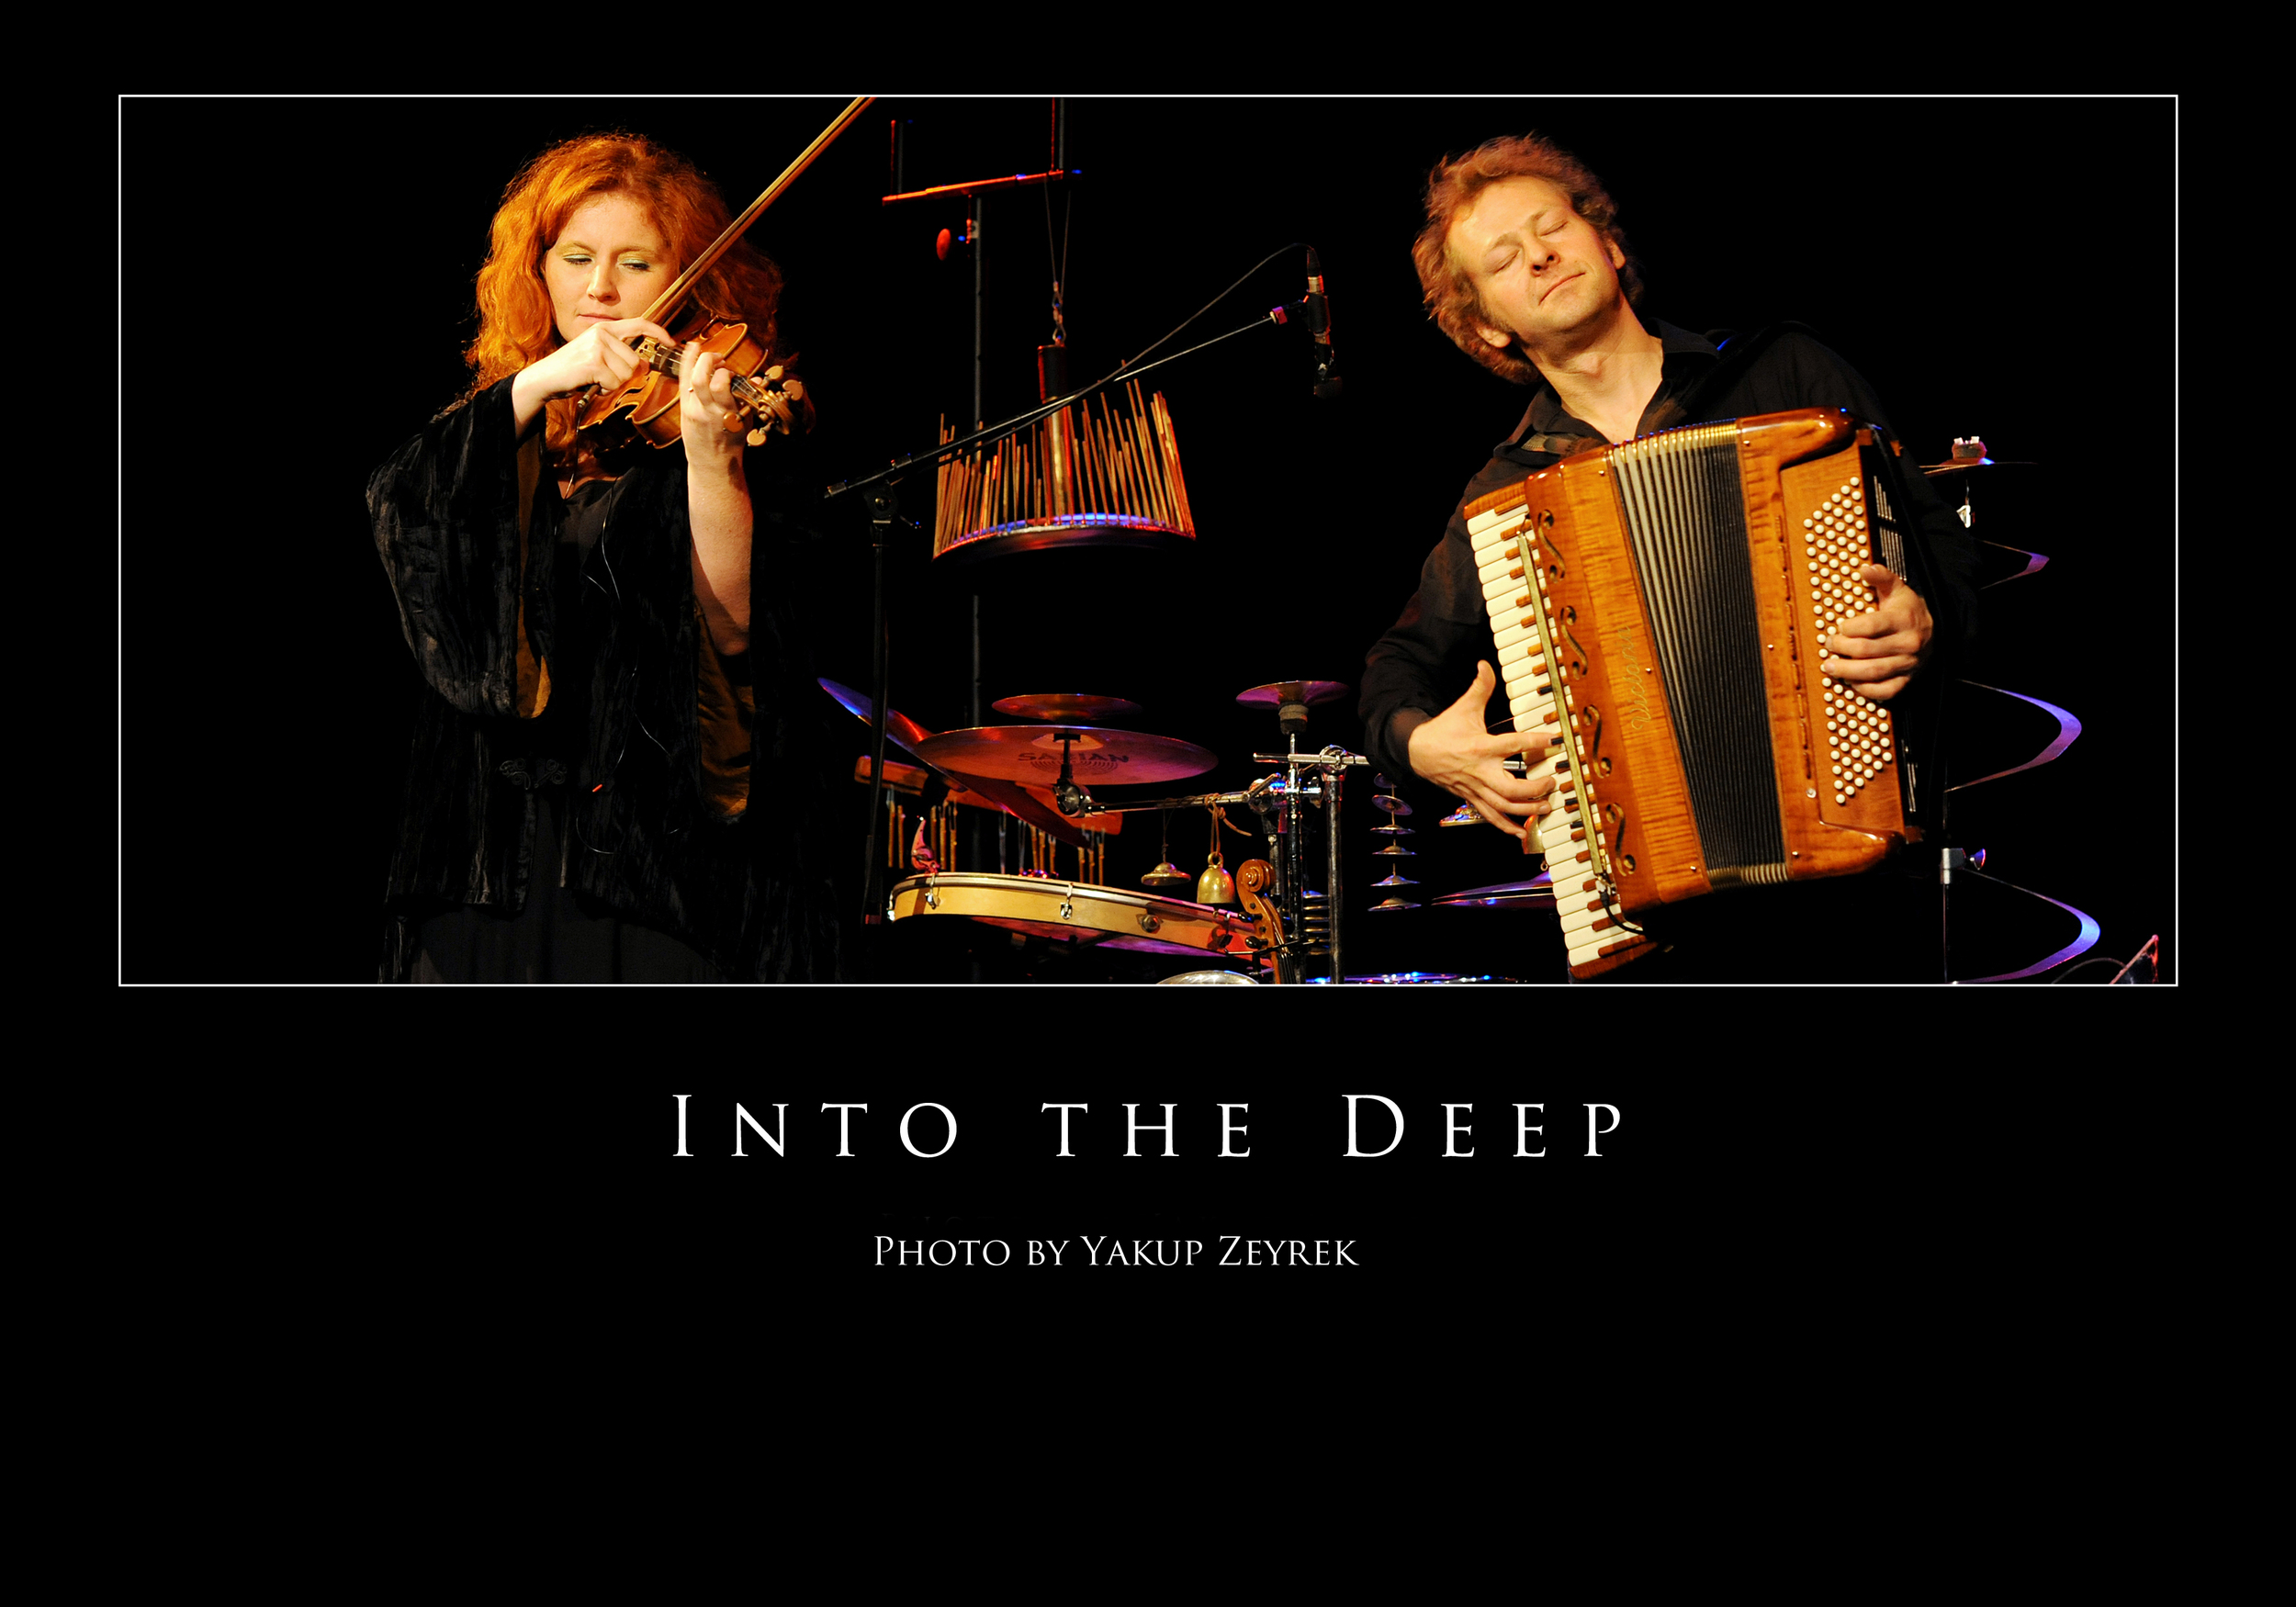 """Martina Eisenreich & Andreas Hinterseher: """"Into the deep"""". Photography by Yakup Zeyrek"""